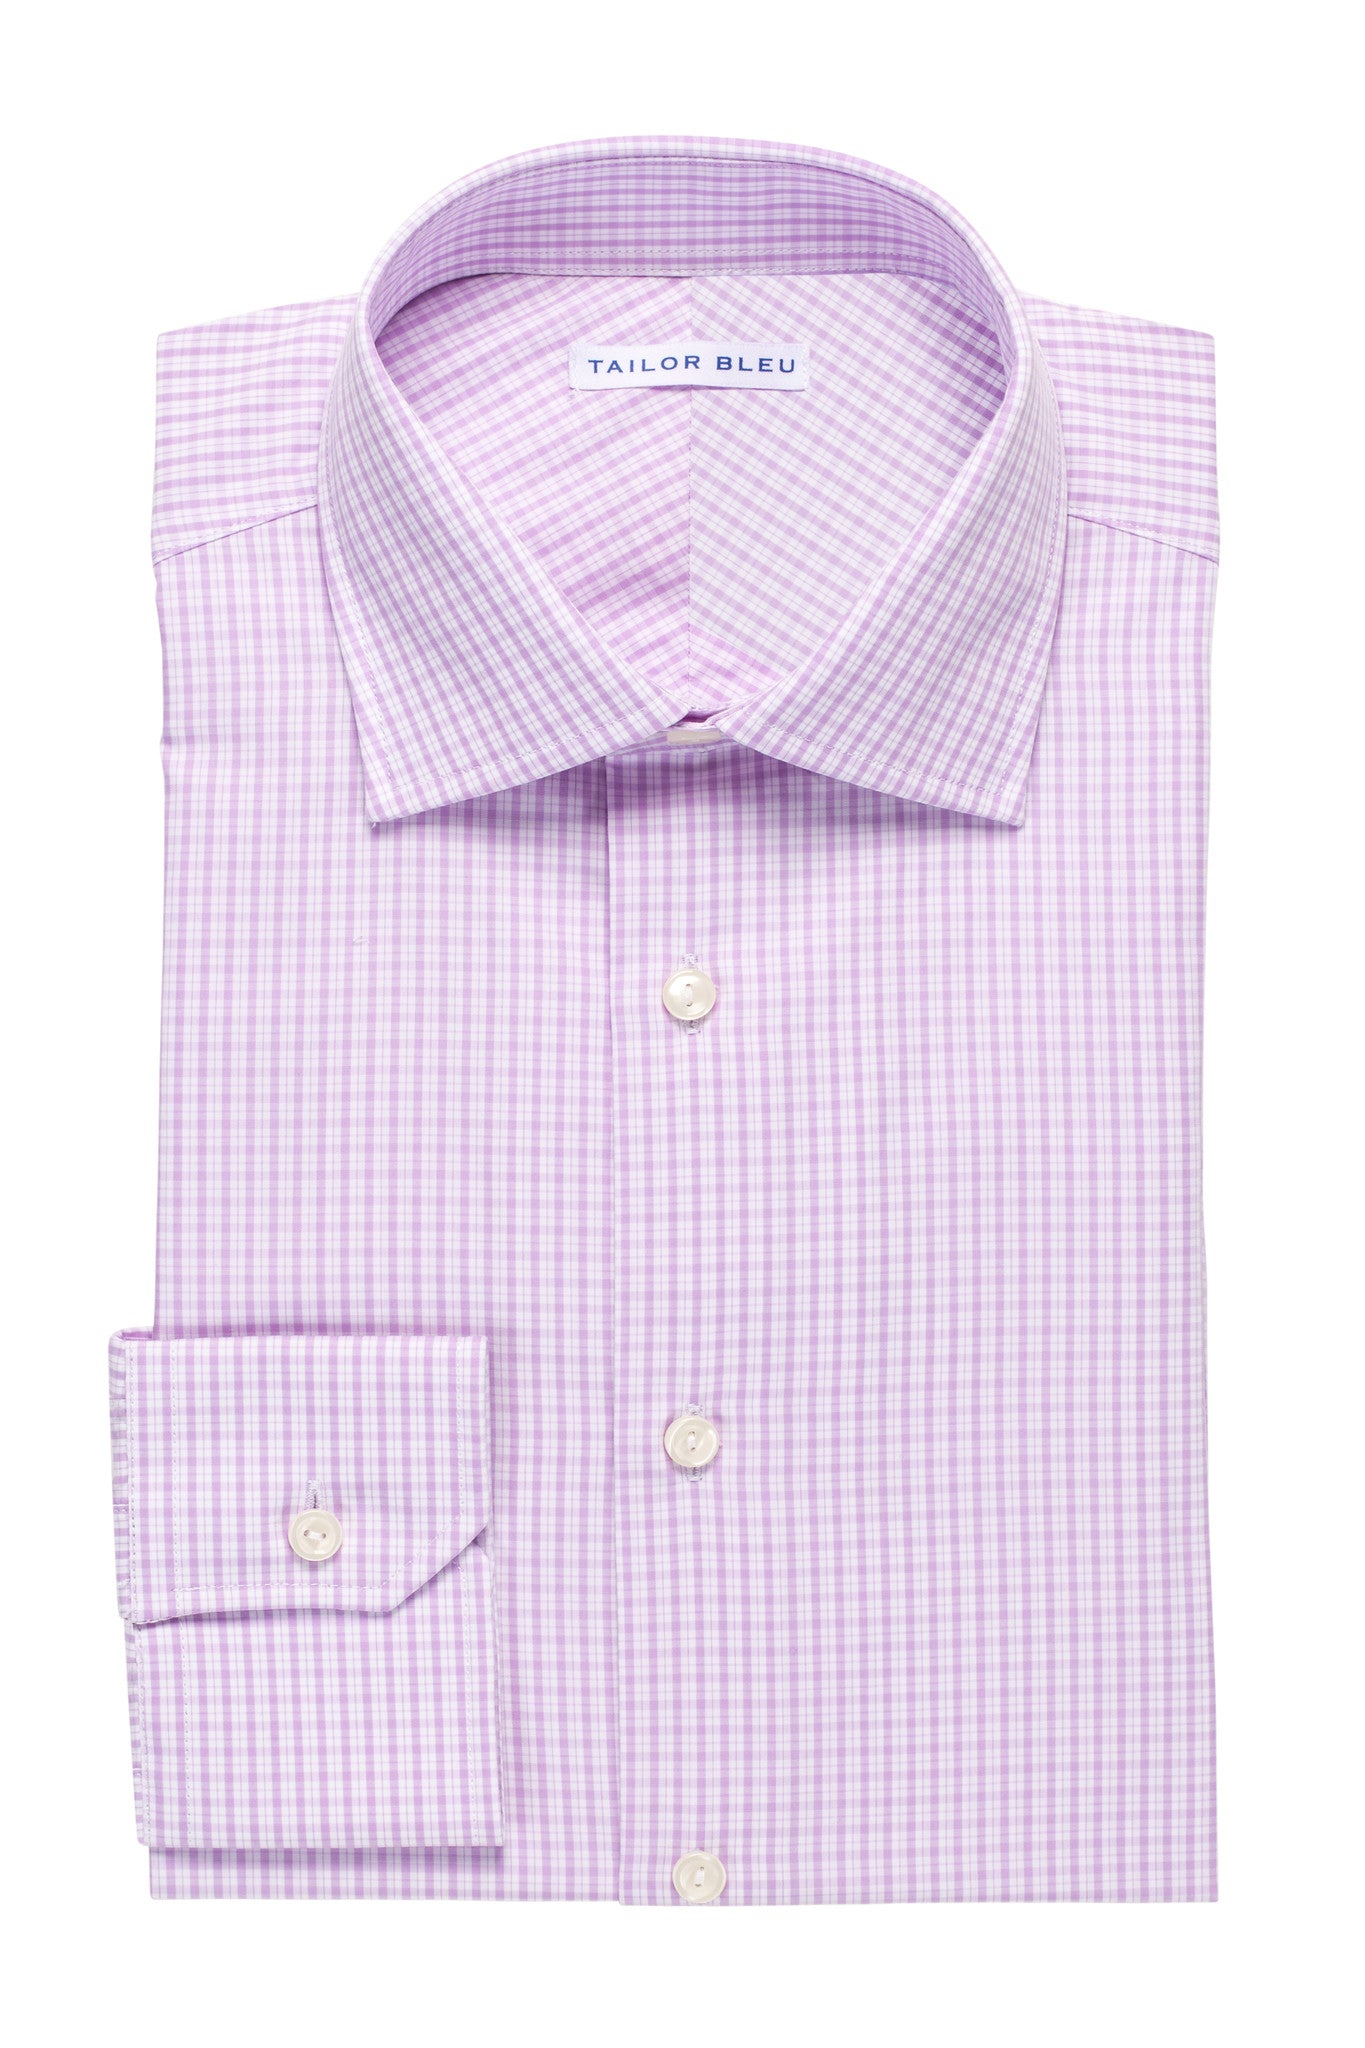 Mini-Plaid Shirt - Round Spread Collar